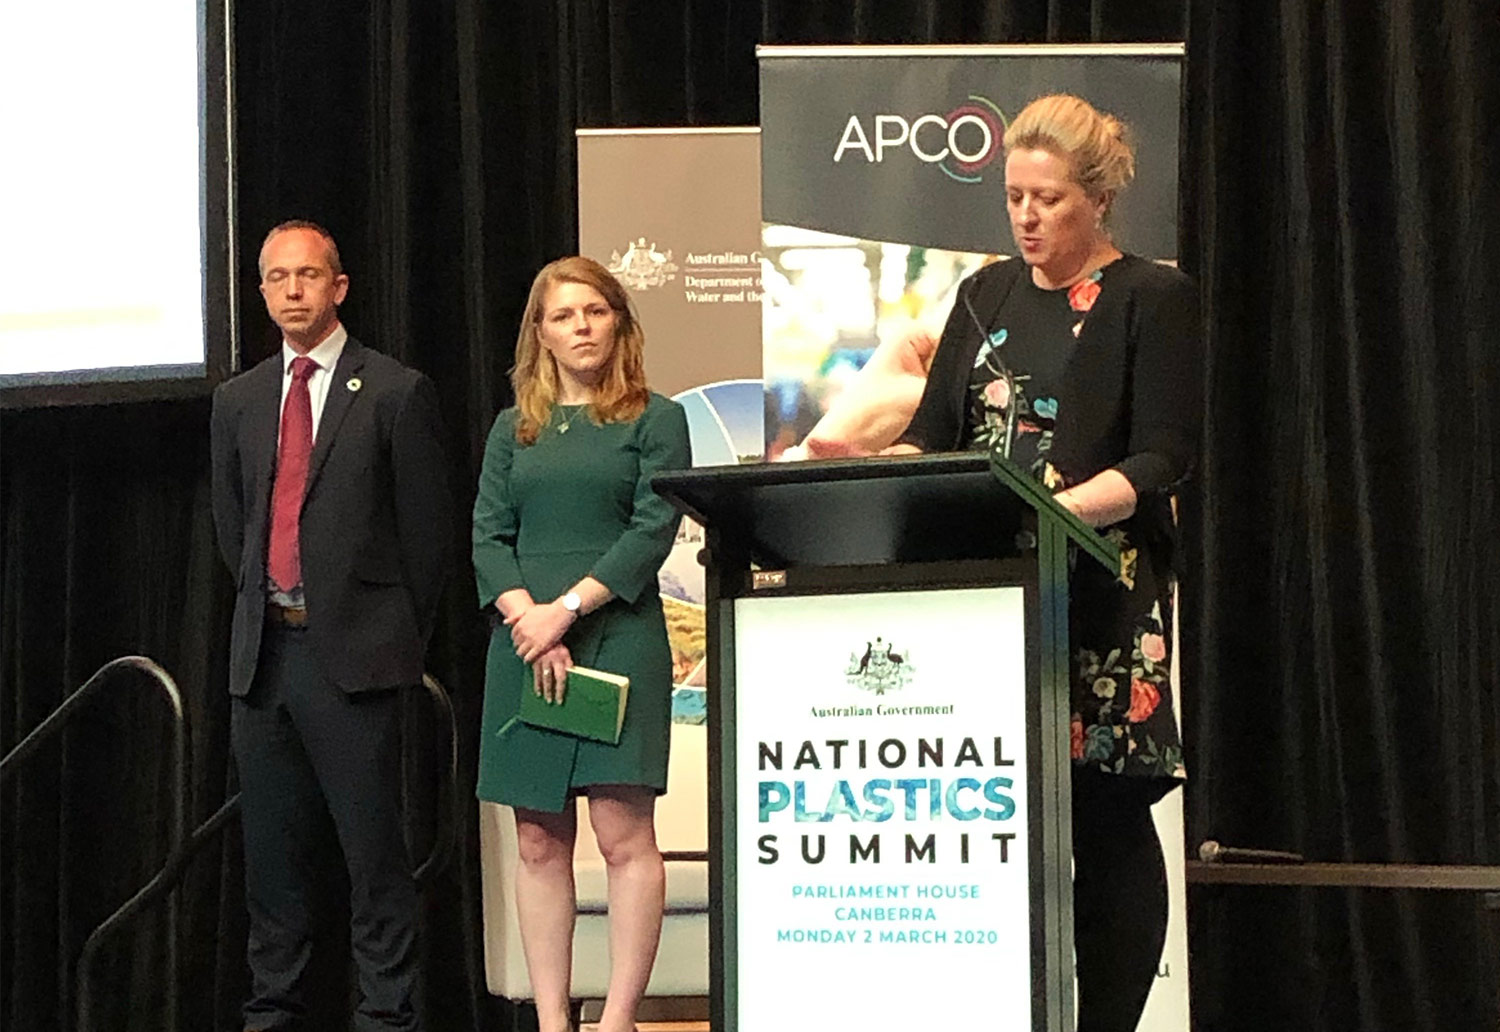 Image of Brooke Donnelly - CEO of APCO presenting at the National Plastics Summit